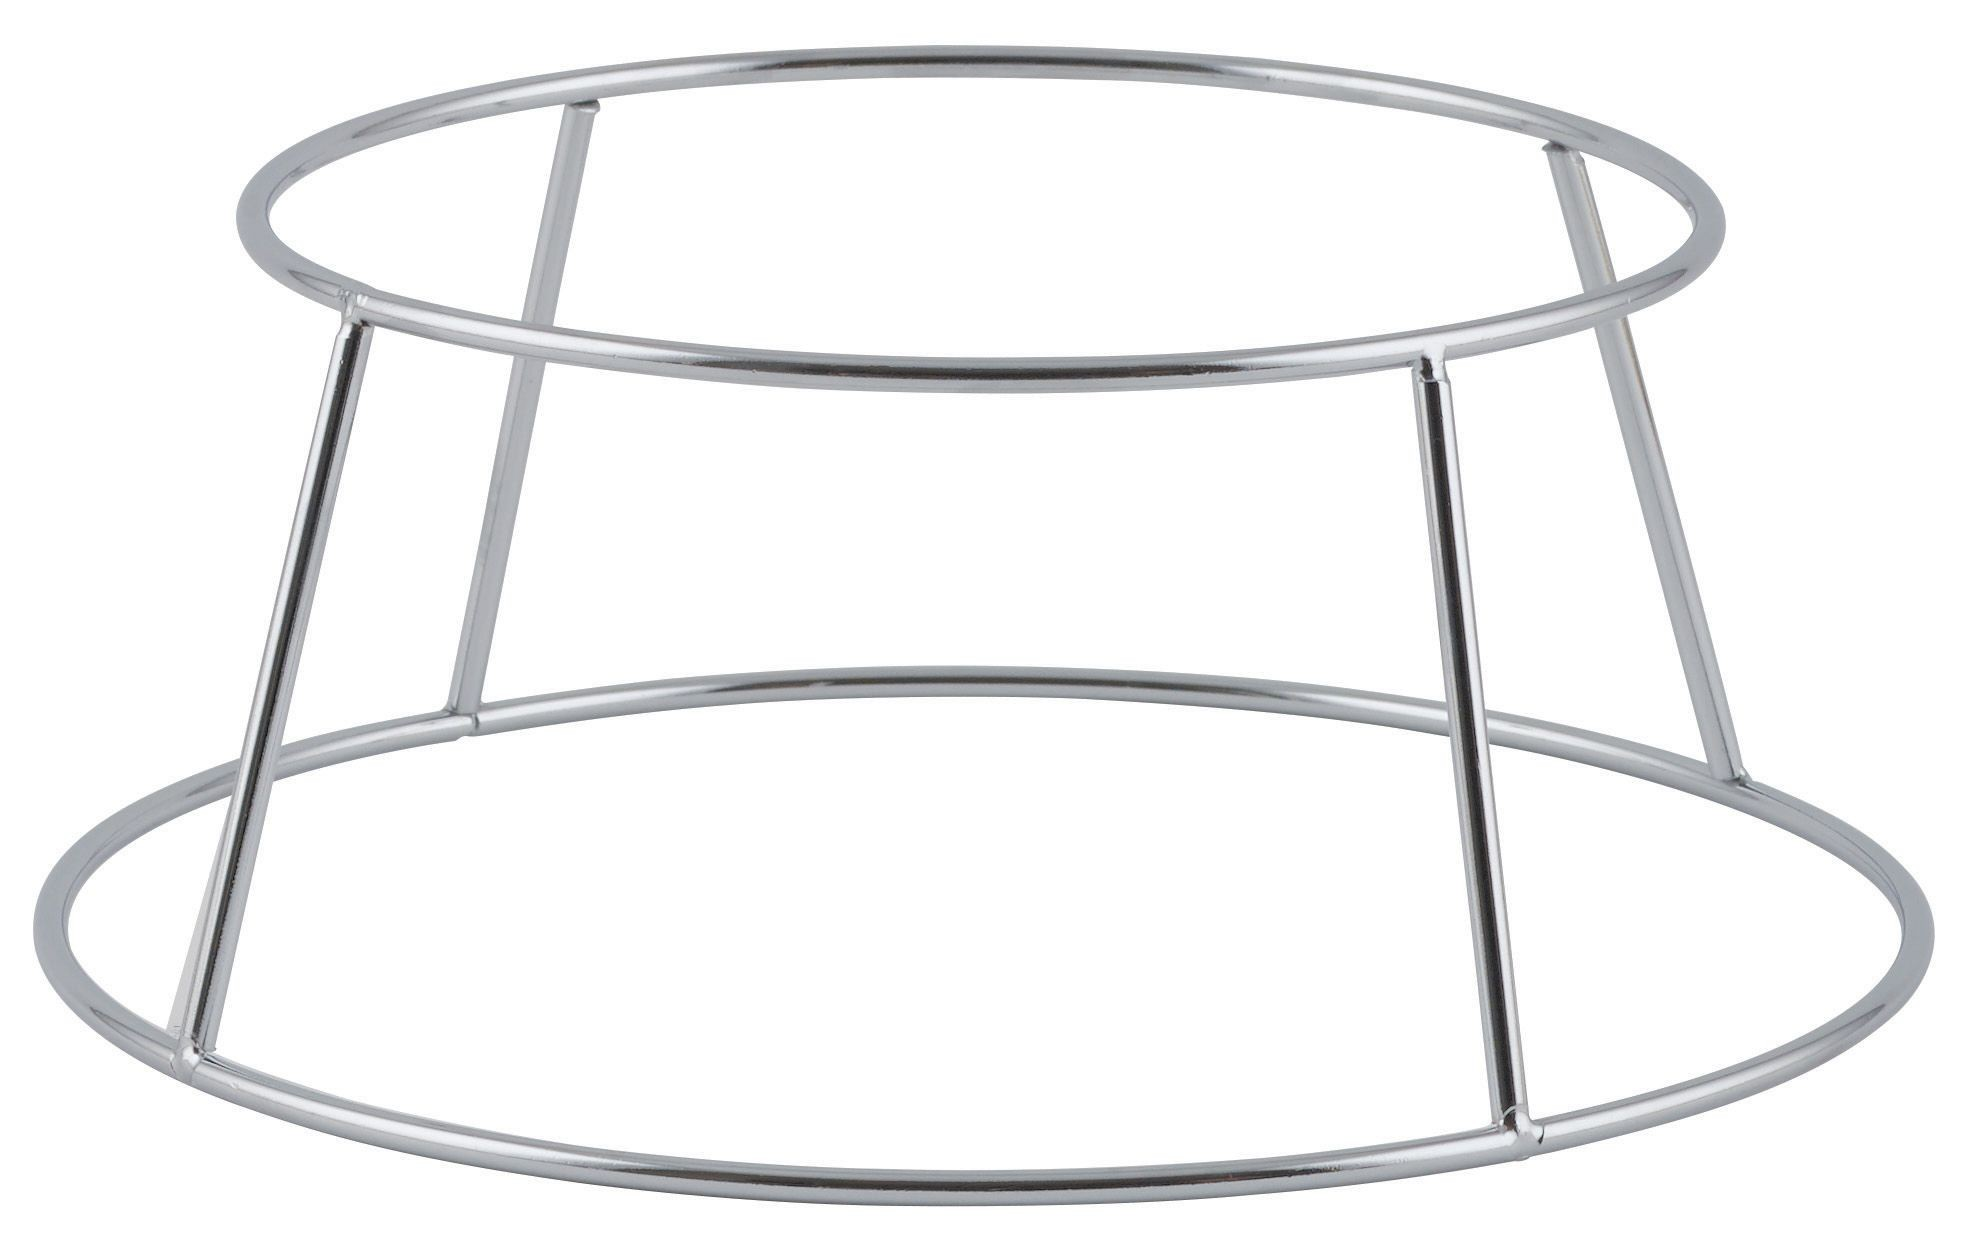 "Winco SFR-4 Aluminum Display Seafood Tray Rack Holder 4-3/8"" H"